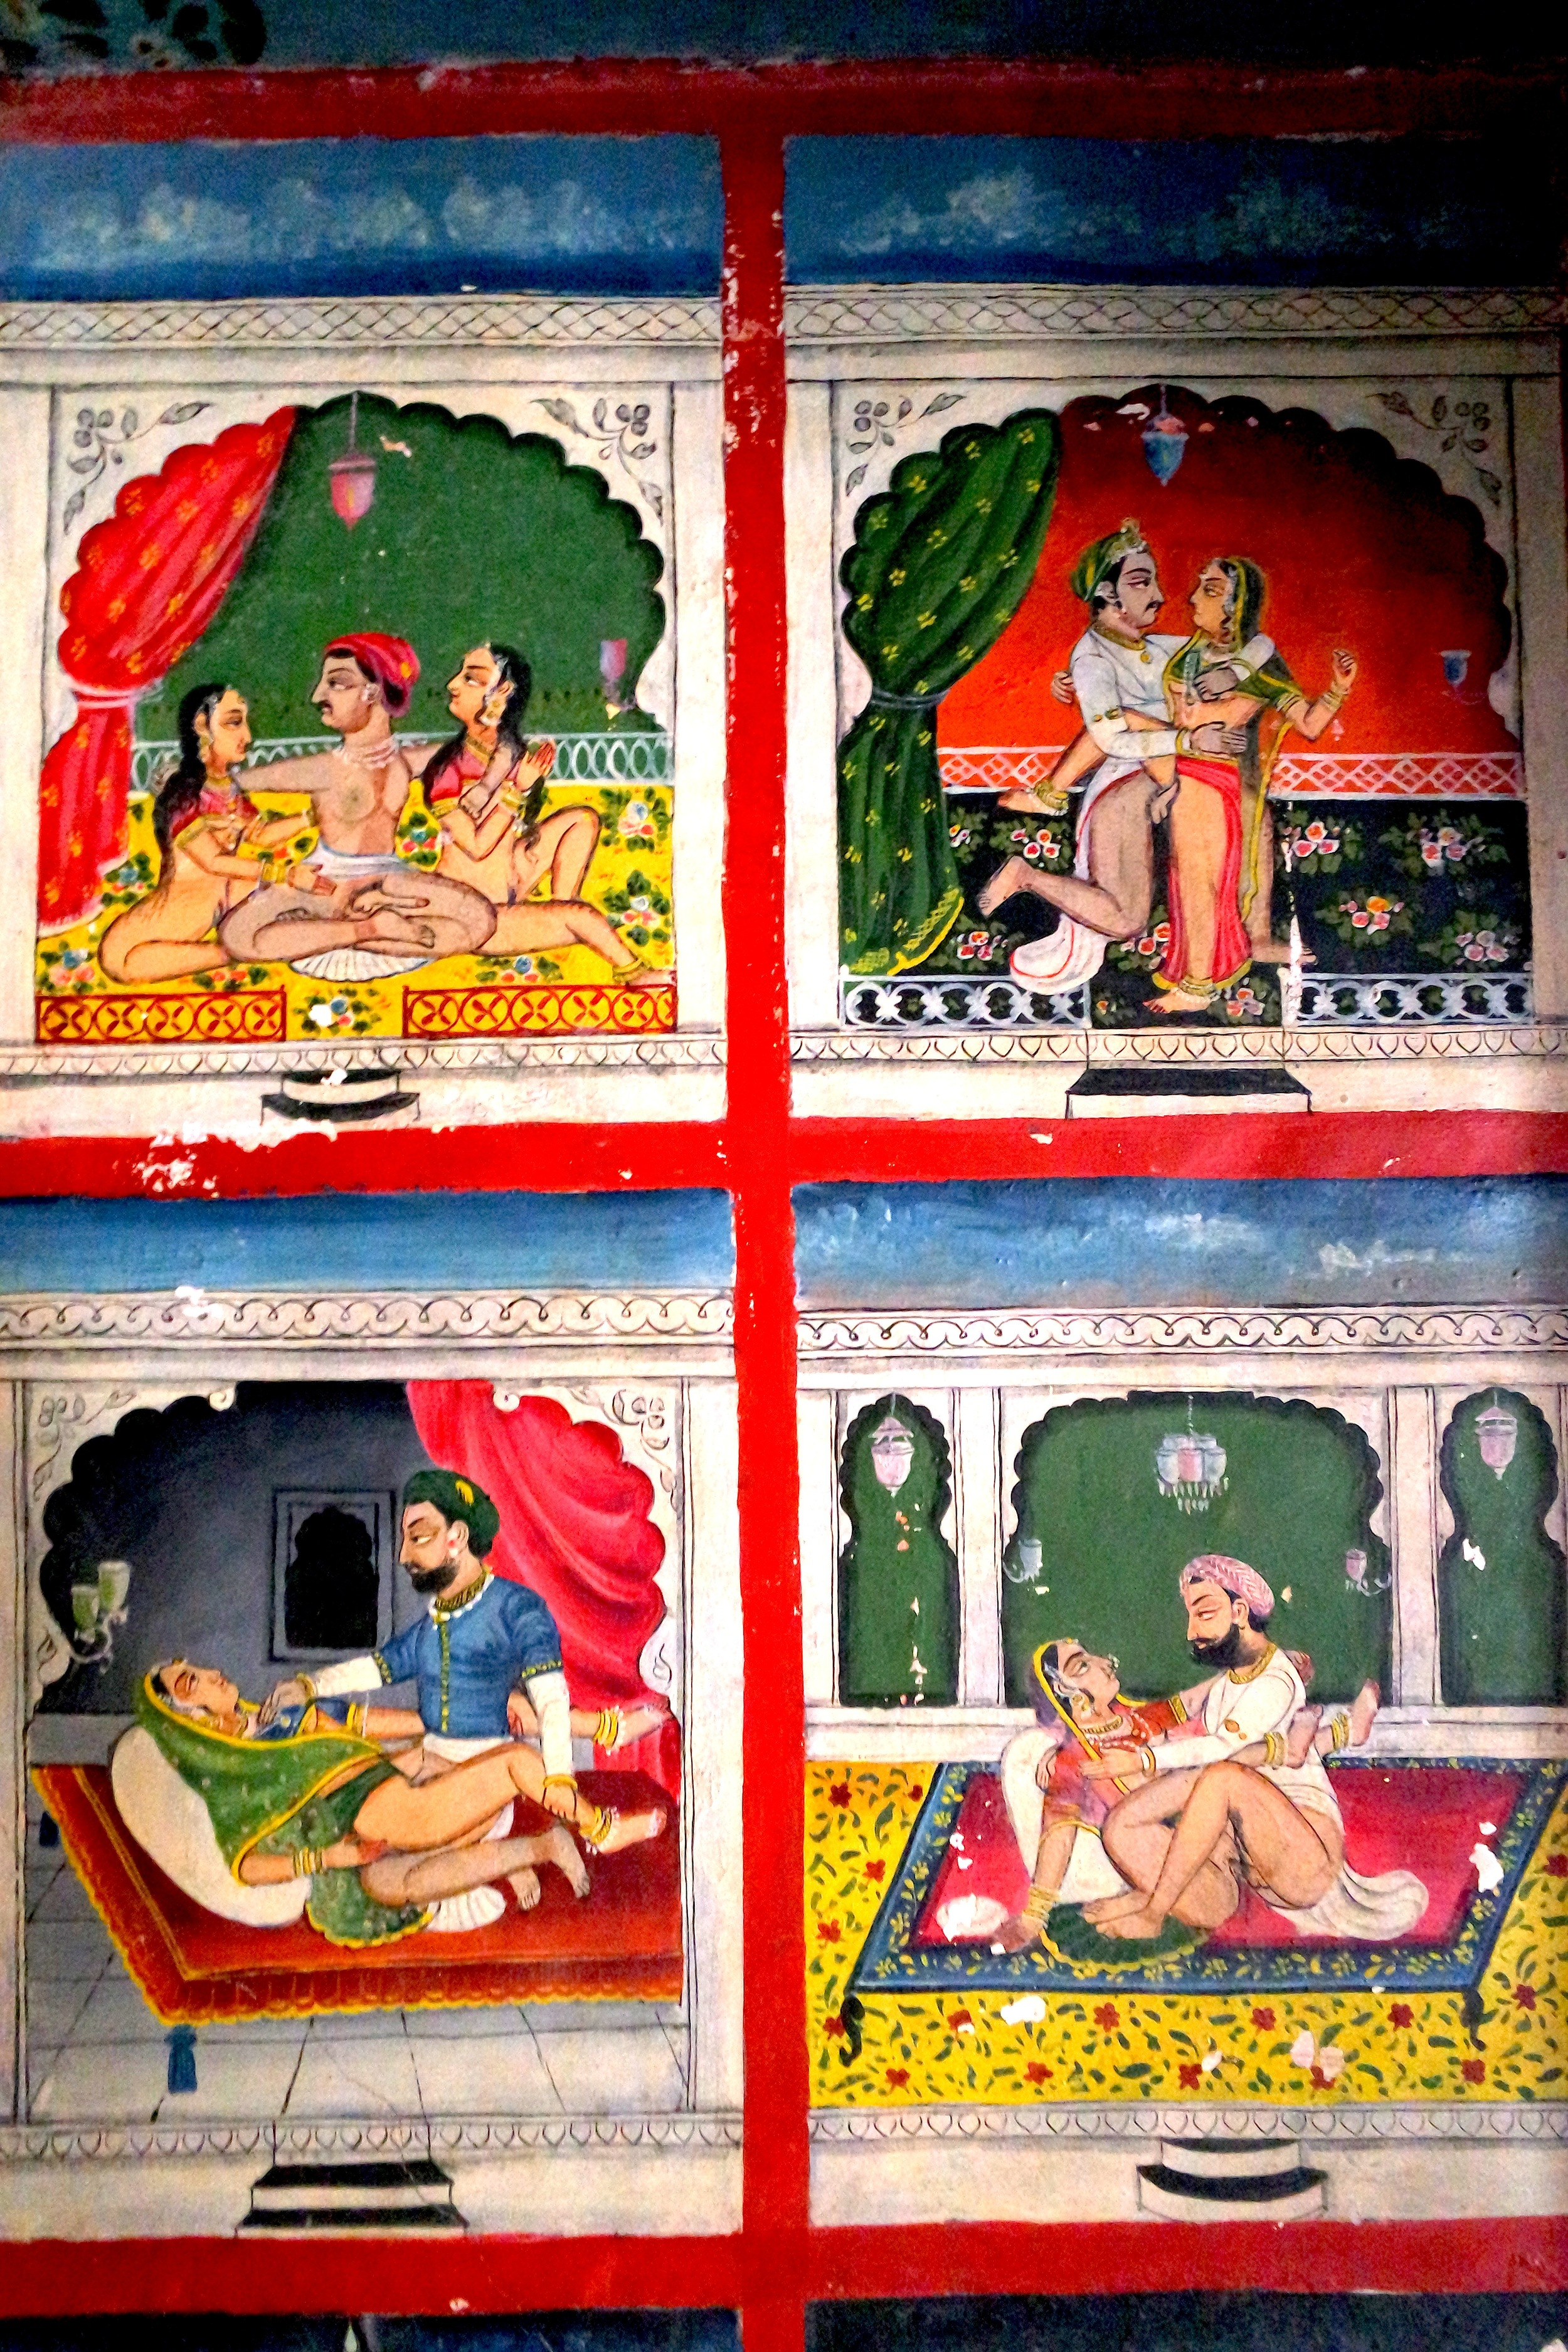 A cabinet on one of the top floors of the Juna Mahal depicts naughty scenes from the Kama Sutra